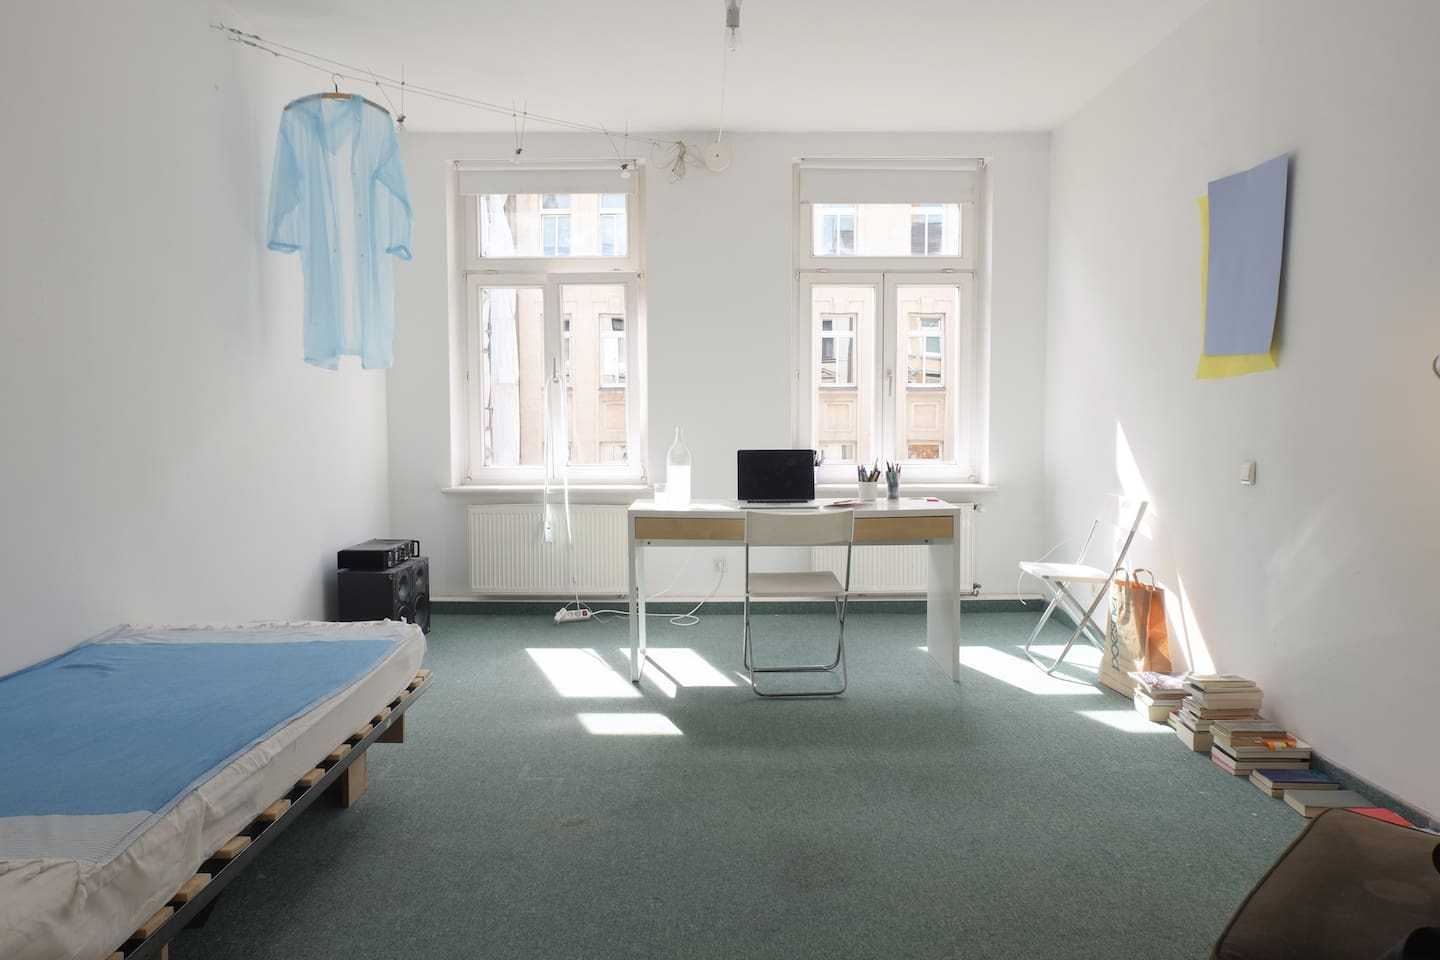 This is your room, the bed on the left is now a 200x160 cm bed, on the photo it is a 200x90 cm (bed still available if needed)